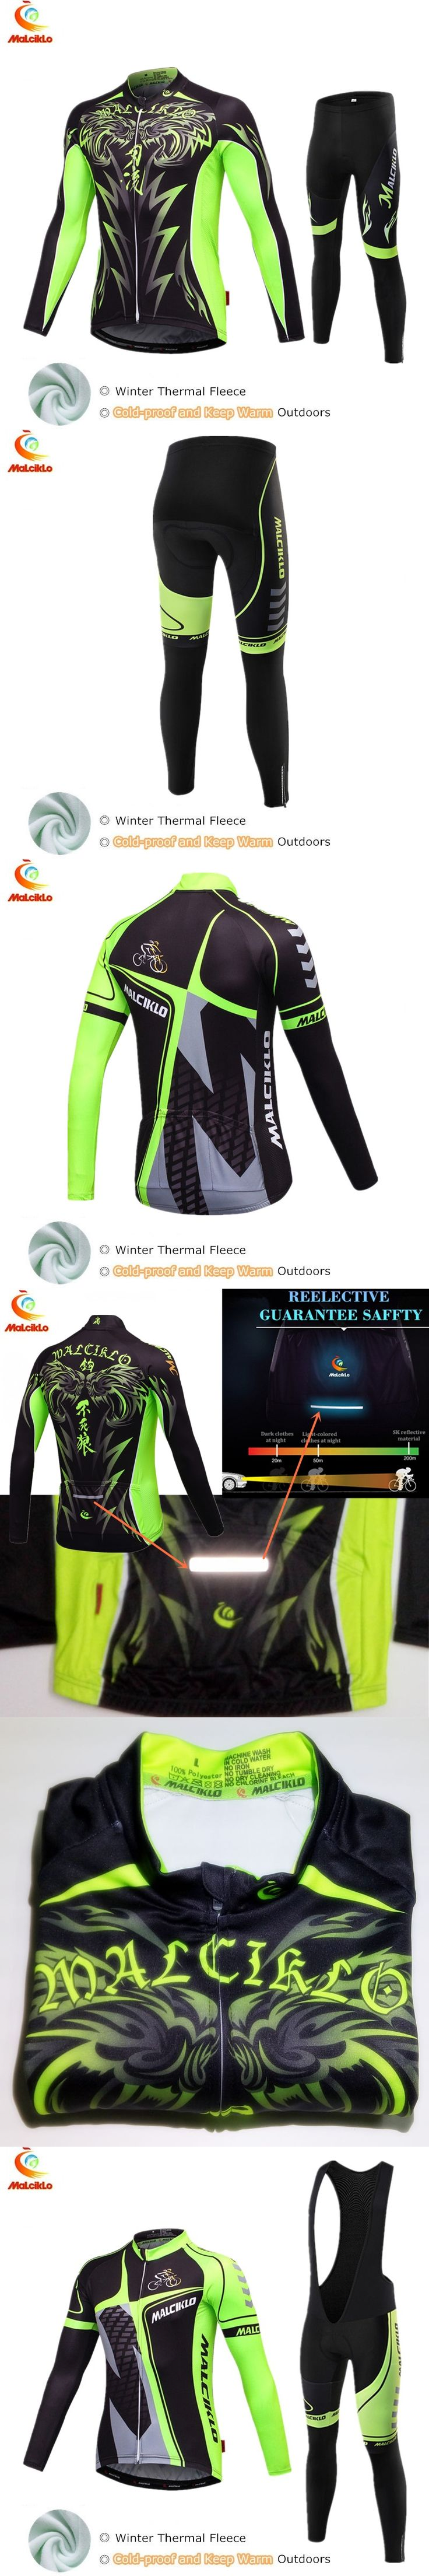 Malciklo 2017 Winter Thermal Fleece Cycling Clothing Bike Wear Clothes Men Pro Cycling Jersey Set Maillot Ropa Ciclismo Invierno